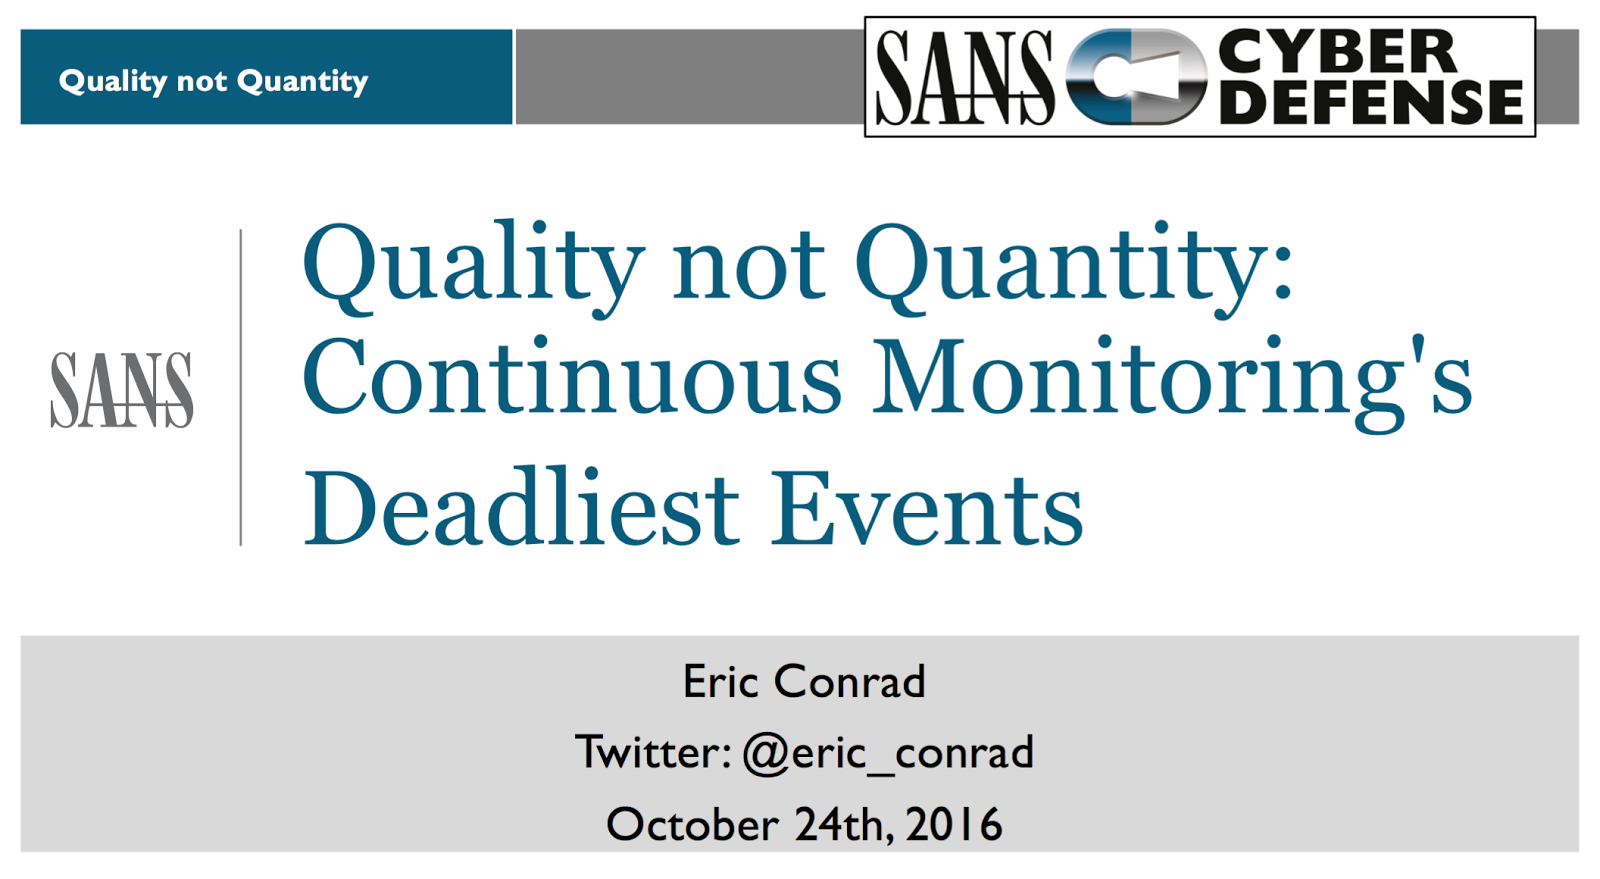 quality not quantity continuous monitorings deadliest events